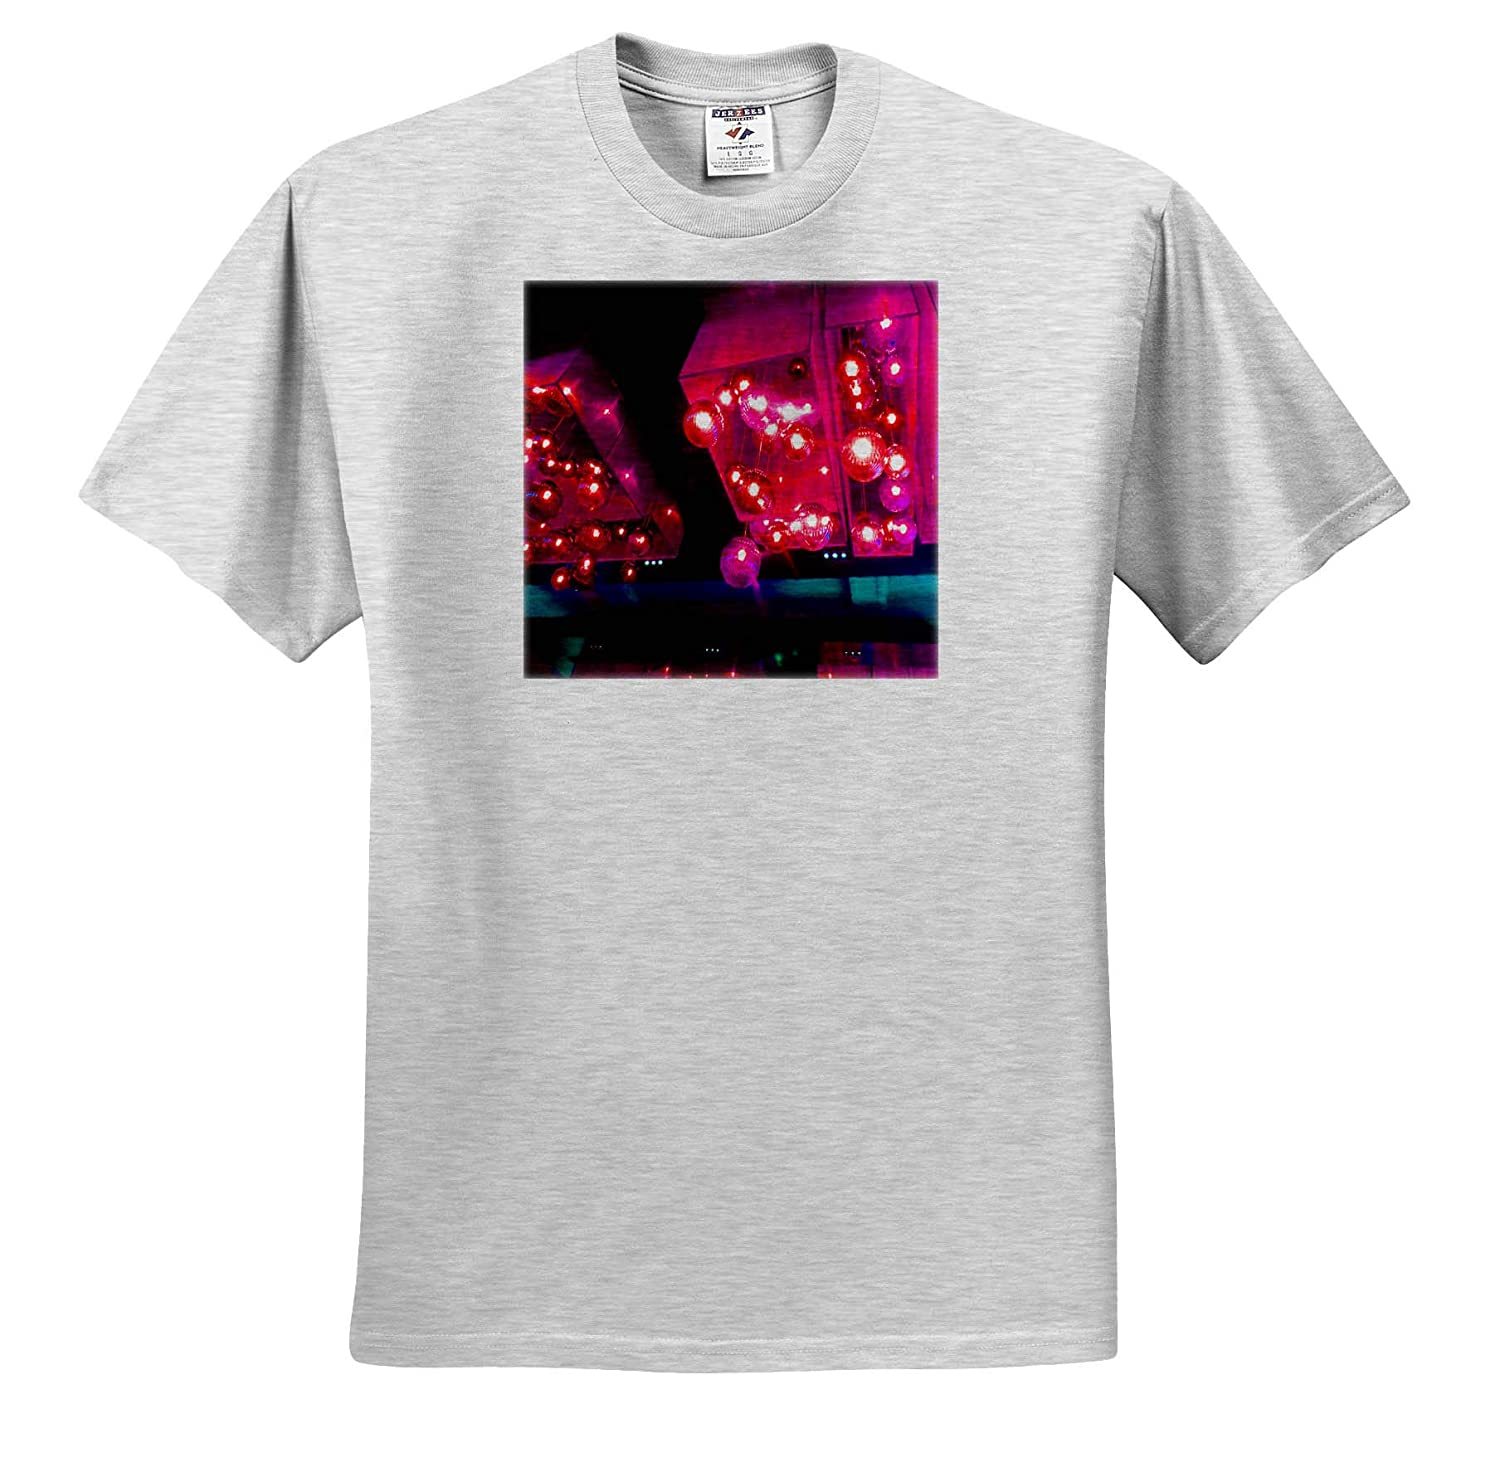 T-Shirts Pink Glowing Lights with Blue in Las Vegas on a Building 3dRose Jos Fauxtographee Vegas Lights in Pink